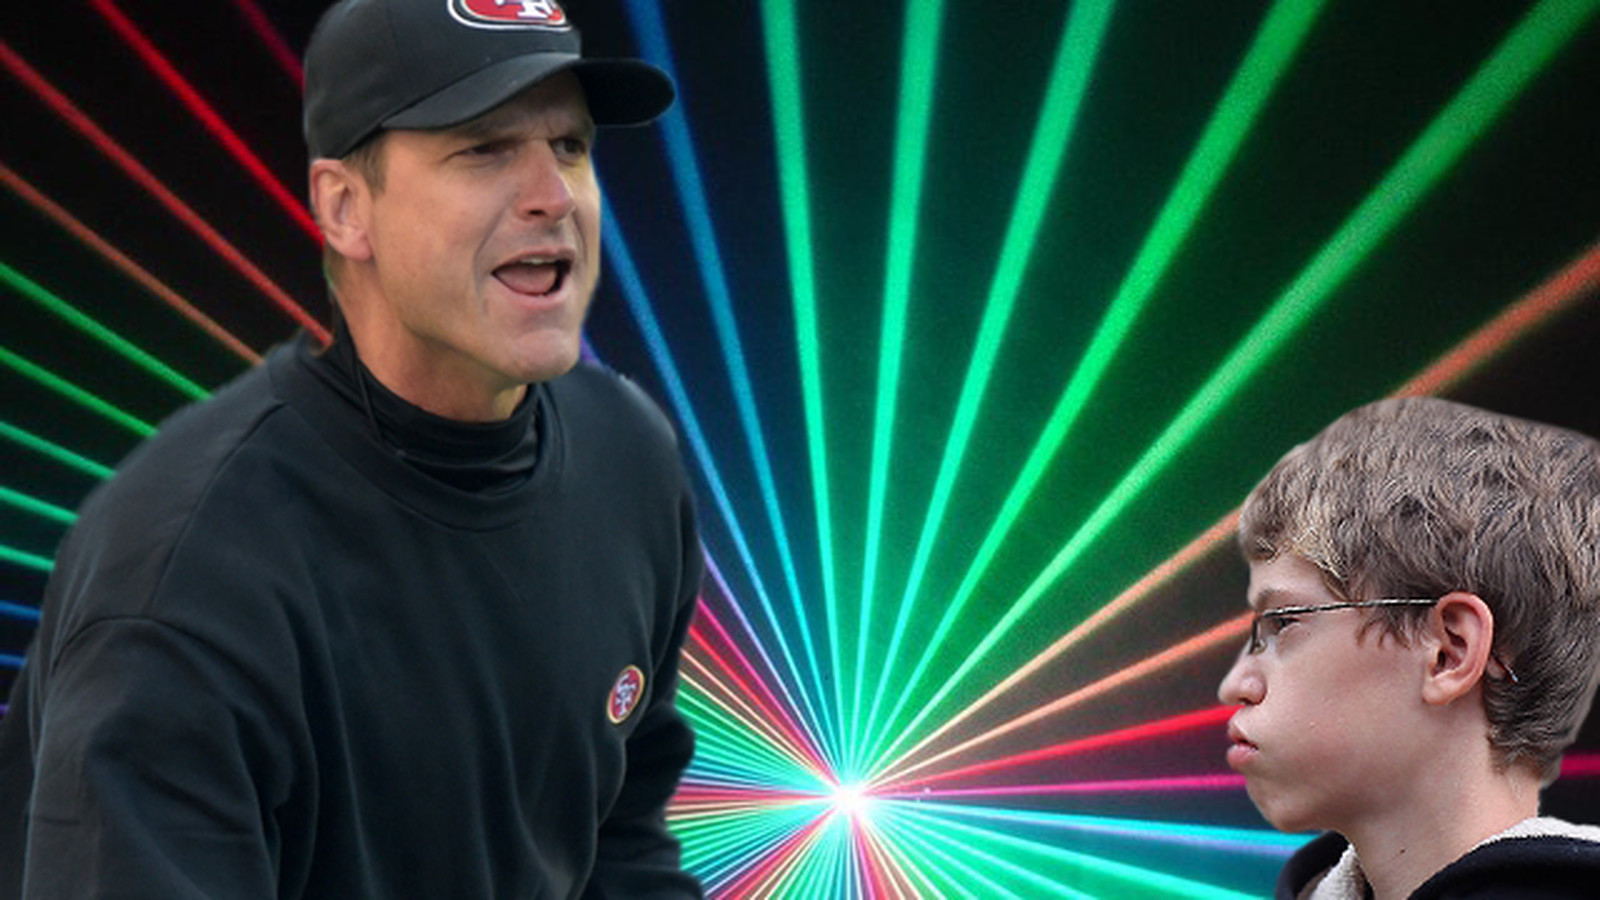 Jim Harbaugh Won Laser Tag By Hunting A 10 Year Old